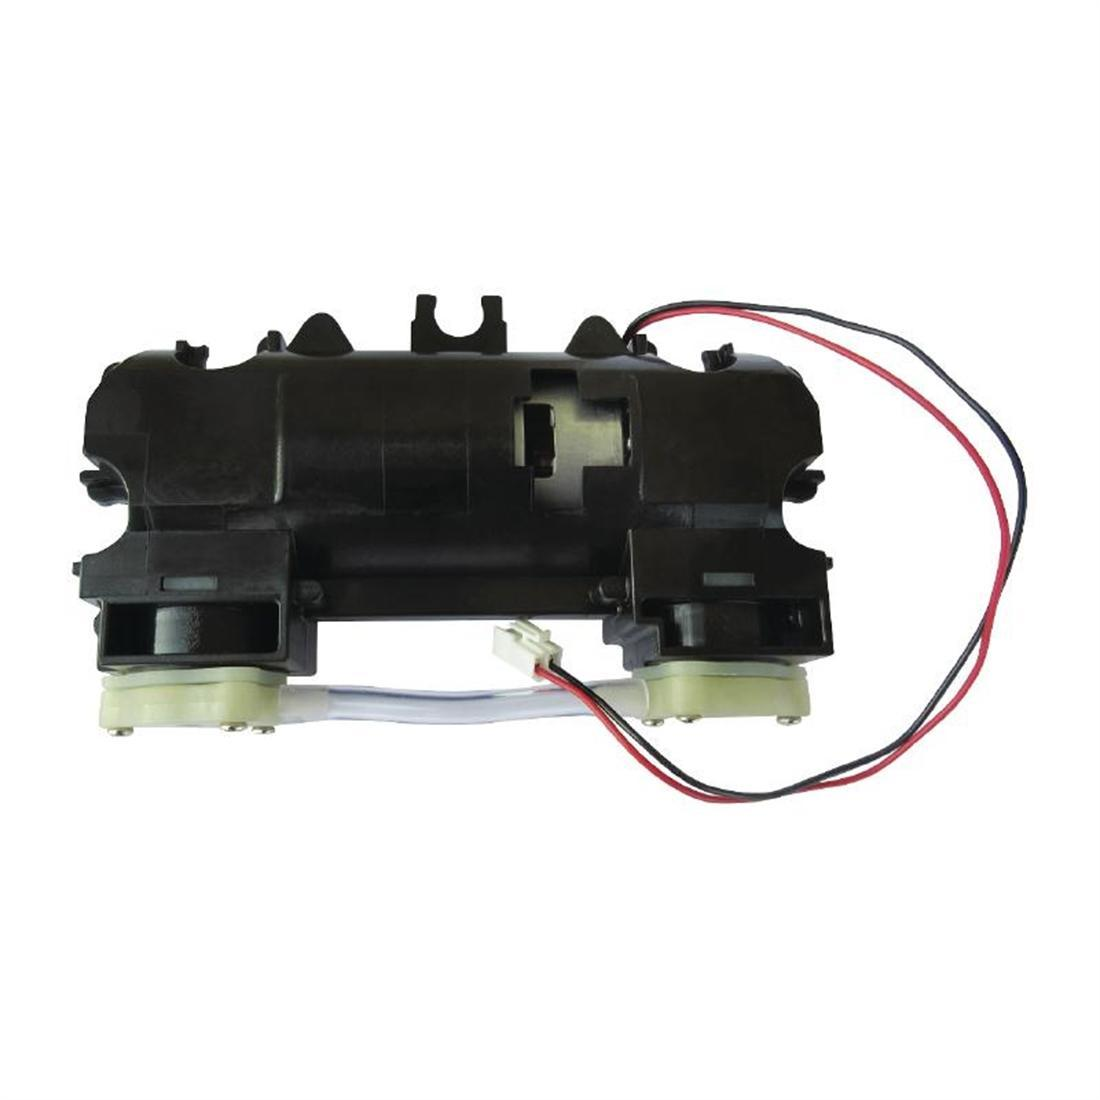 Buffalo Motor Pump Assembly for Vacuum Packing Machine  - AG926